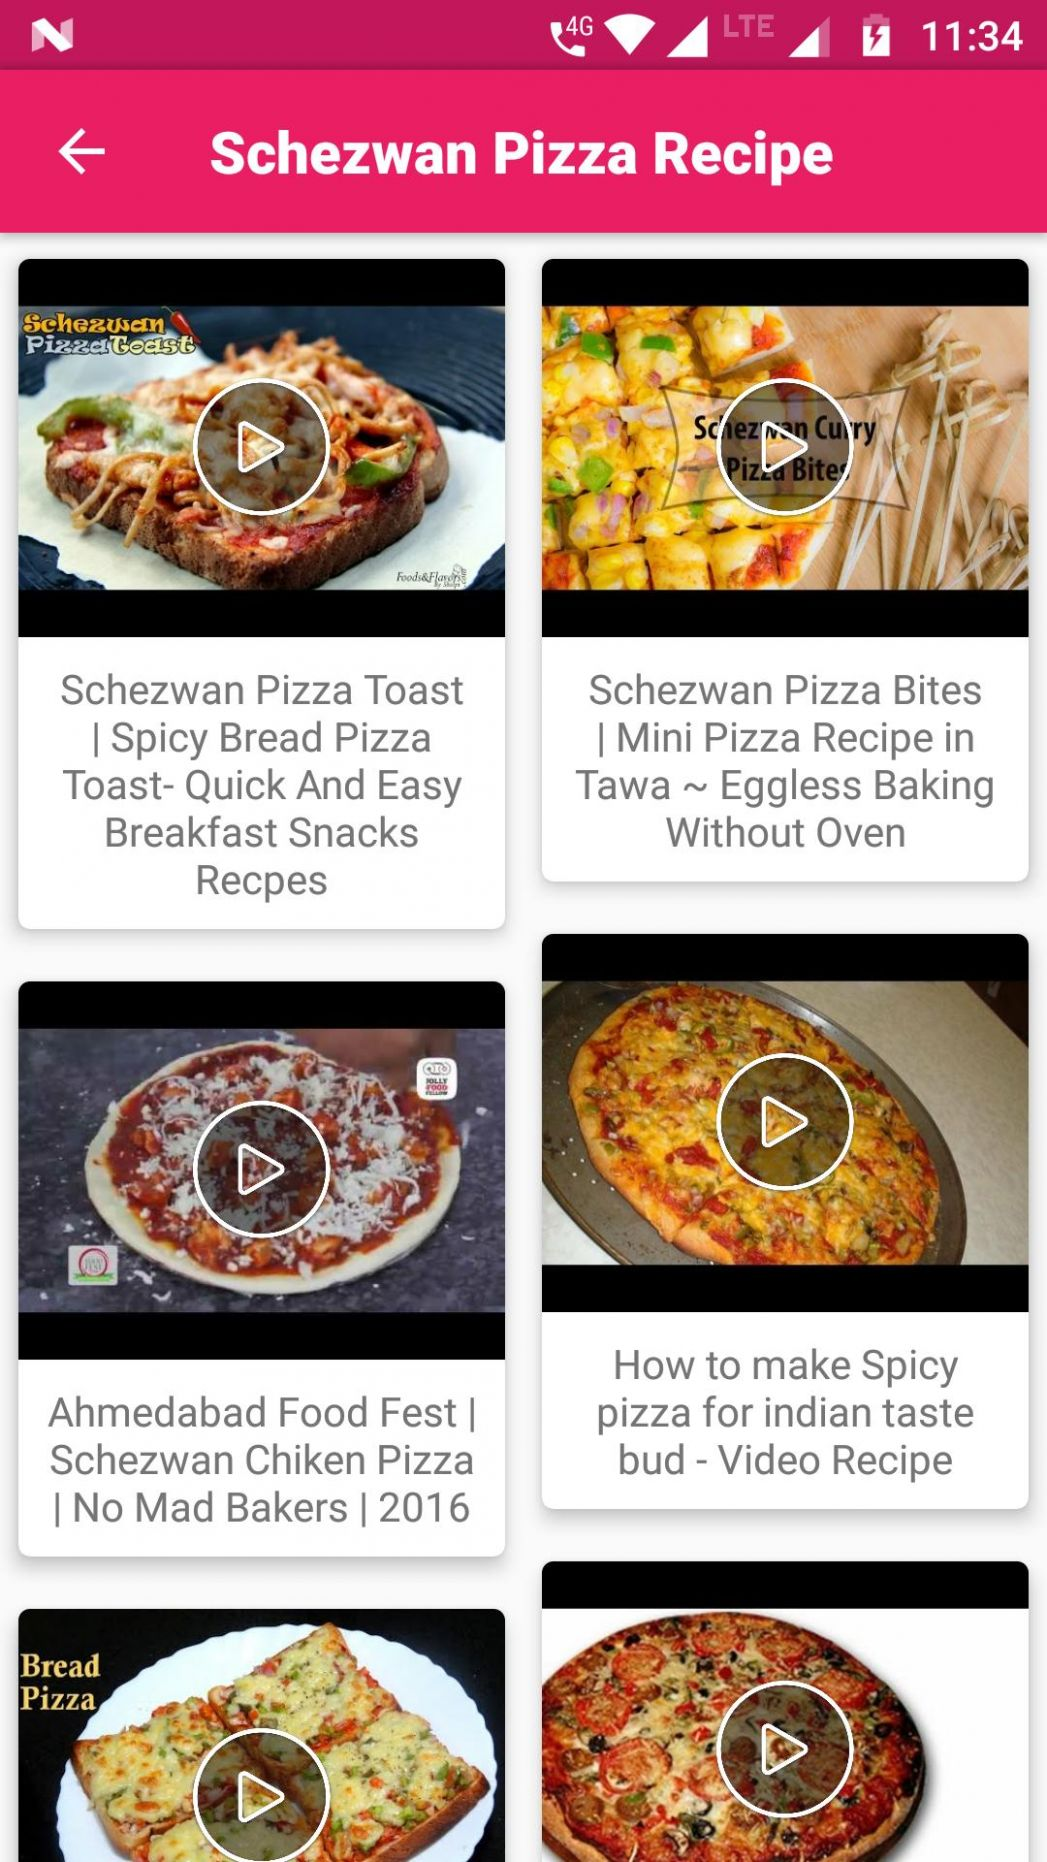 Pizza All Recipes Video (New + HD) for Android - APK Download - Pizza Recipes Video Download